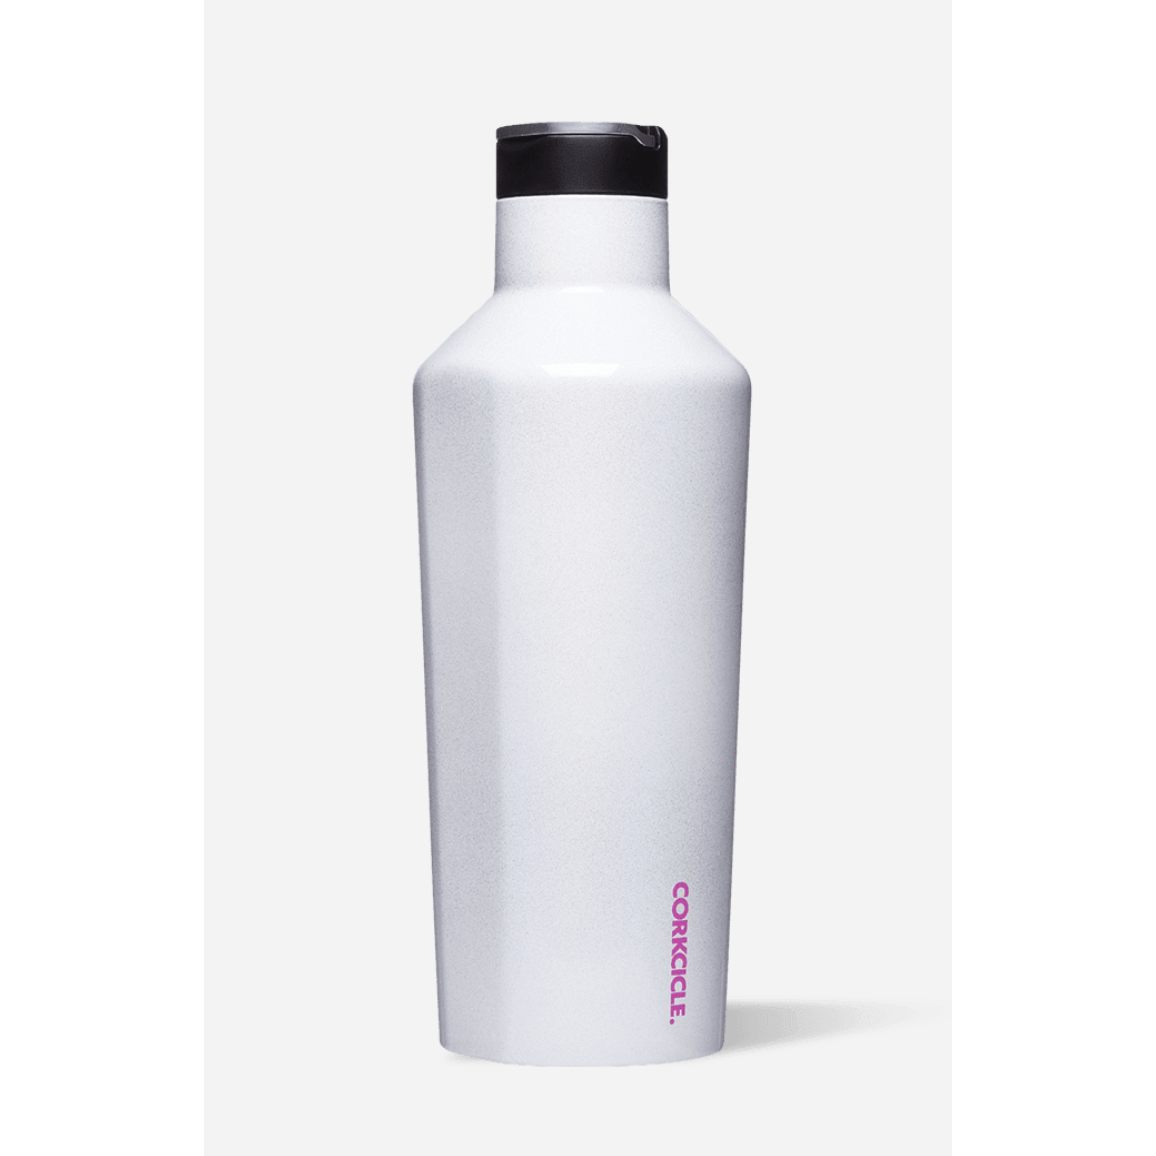 Corkcicle - SPORT CANTEEN 40 OZ - Unicorn Magic